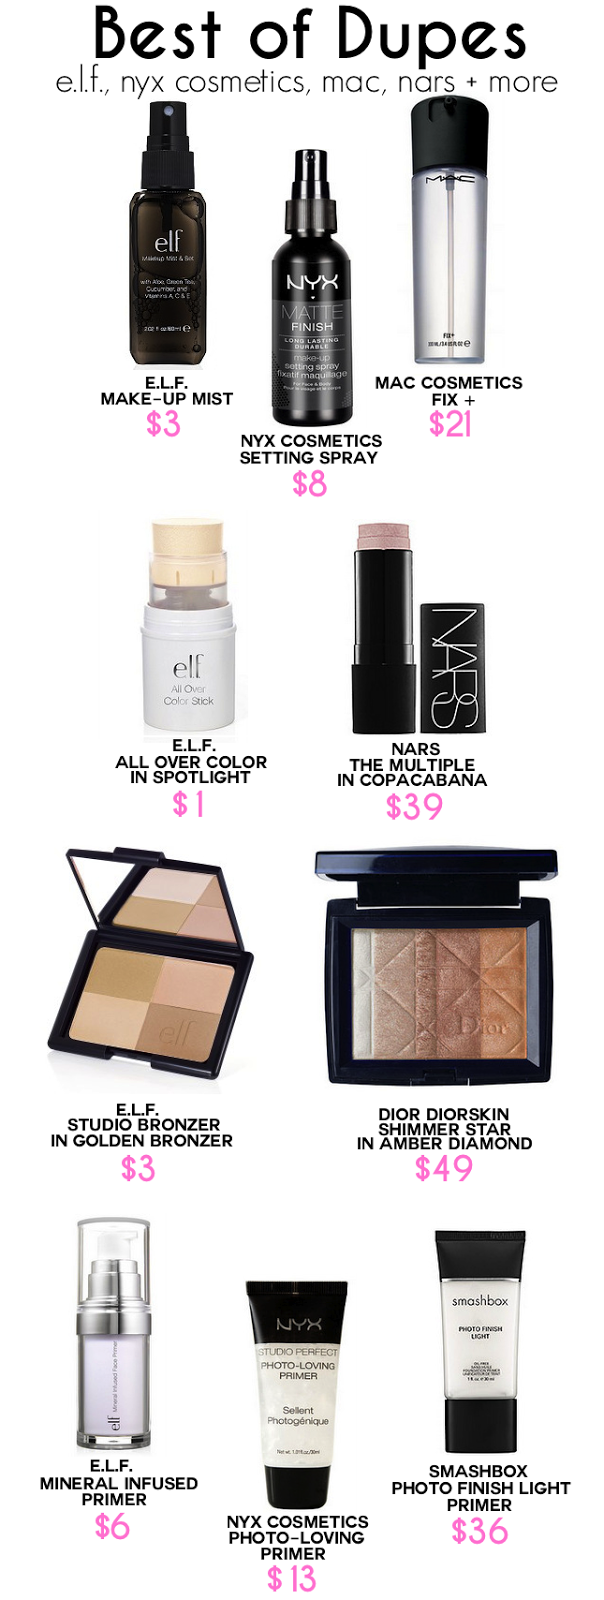 Beauty On A Budget // Best Of Dupes: Face + Primer